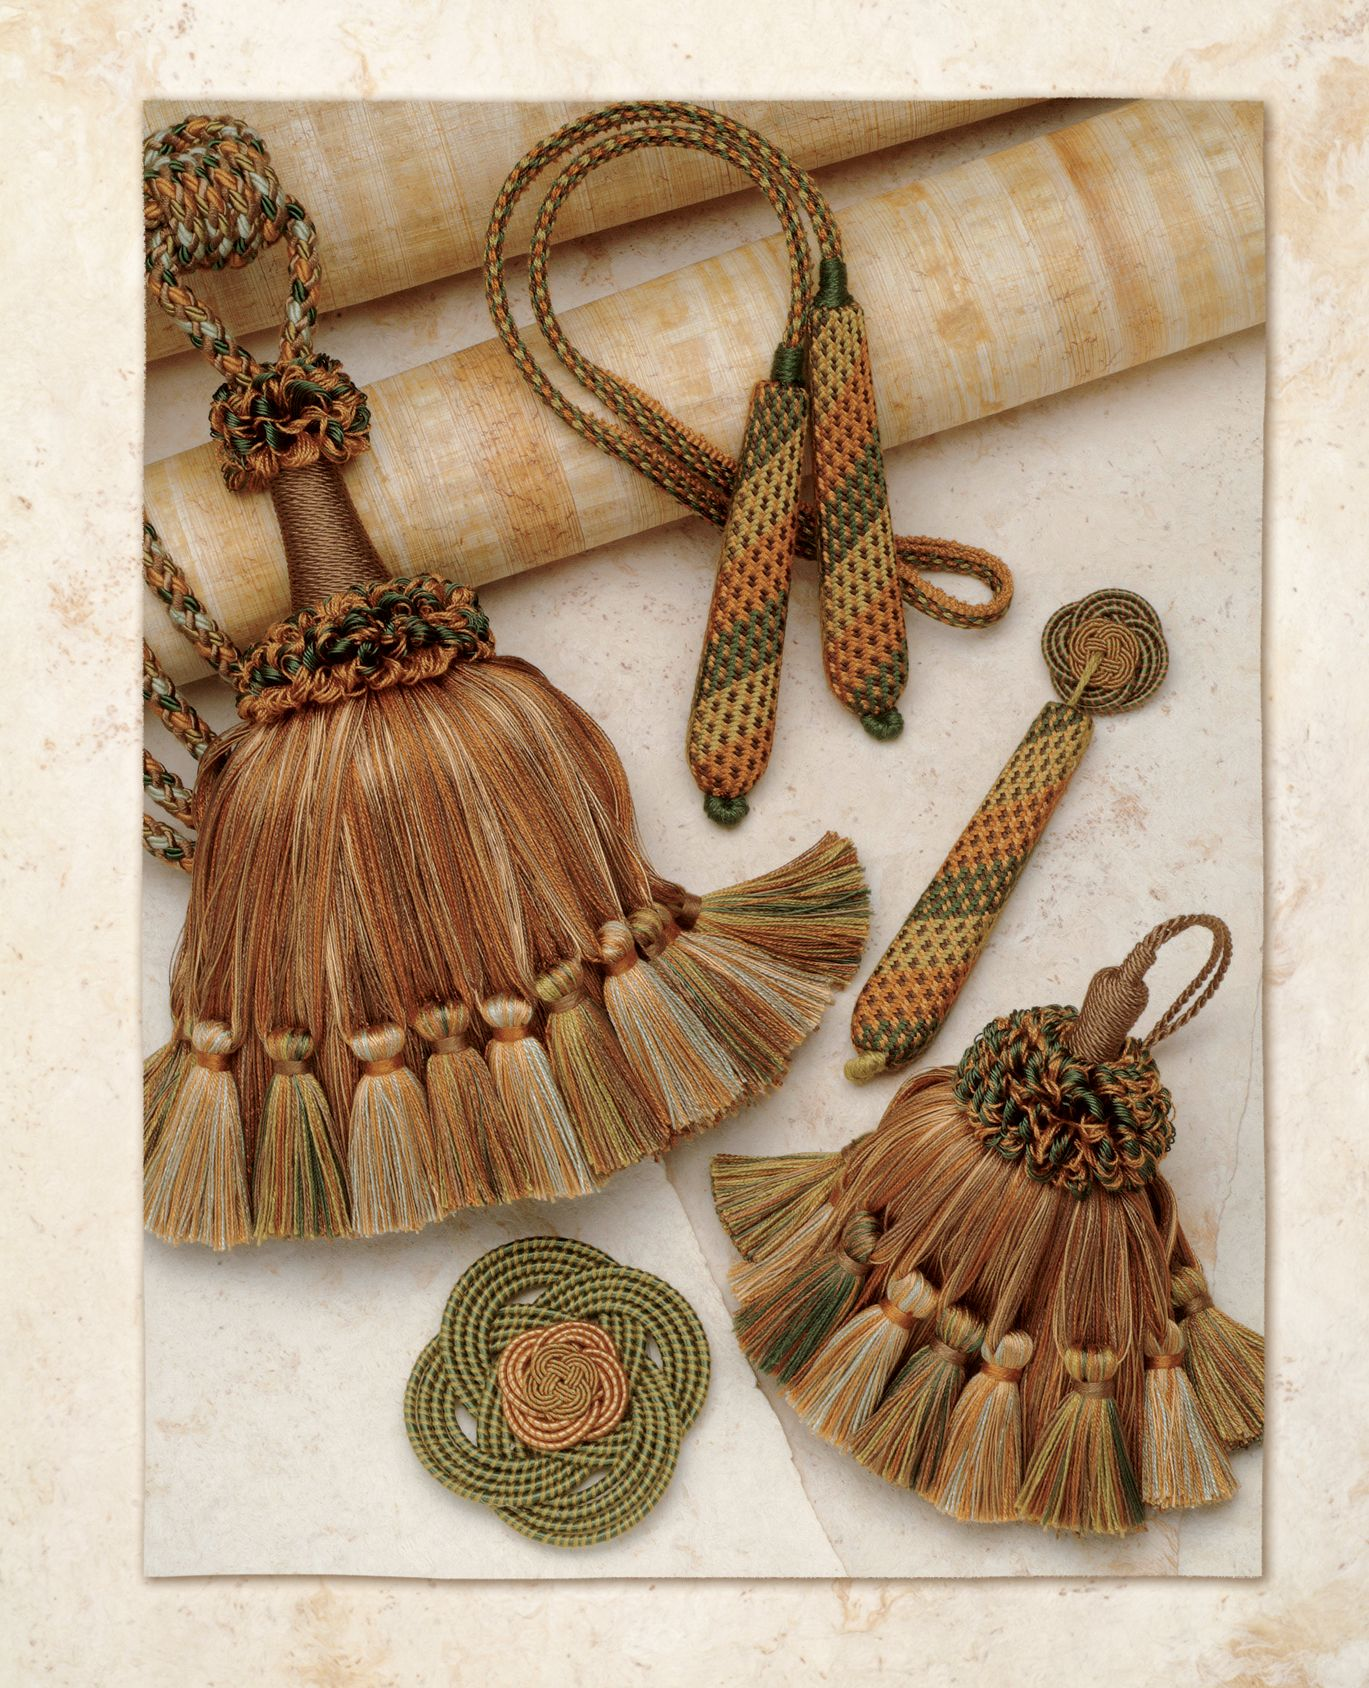 Decorative accessories from the Renaissance Collection by BRIMAR. #brimar  #trim  #tassels